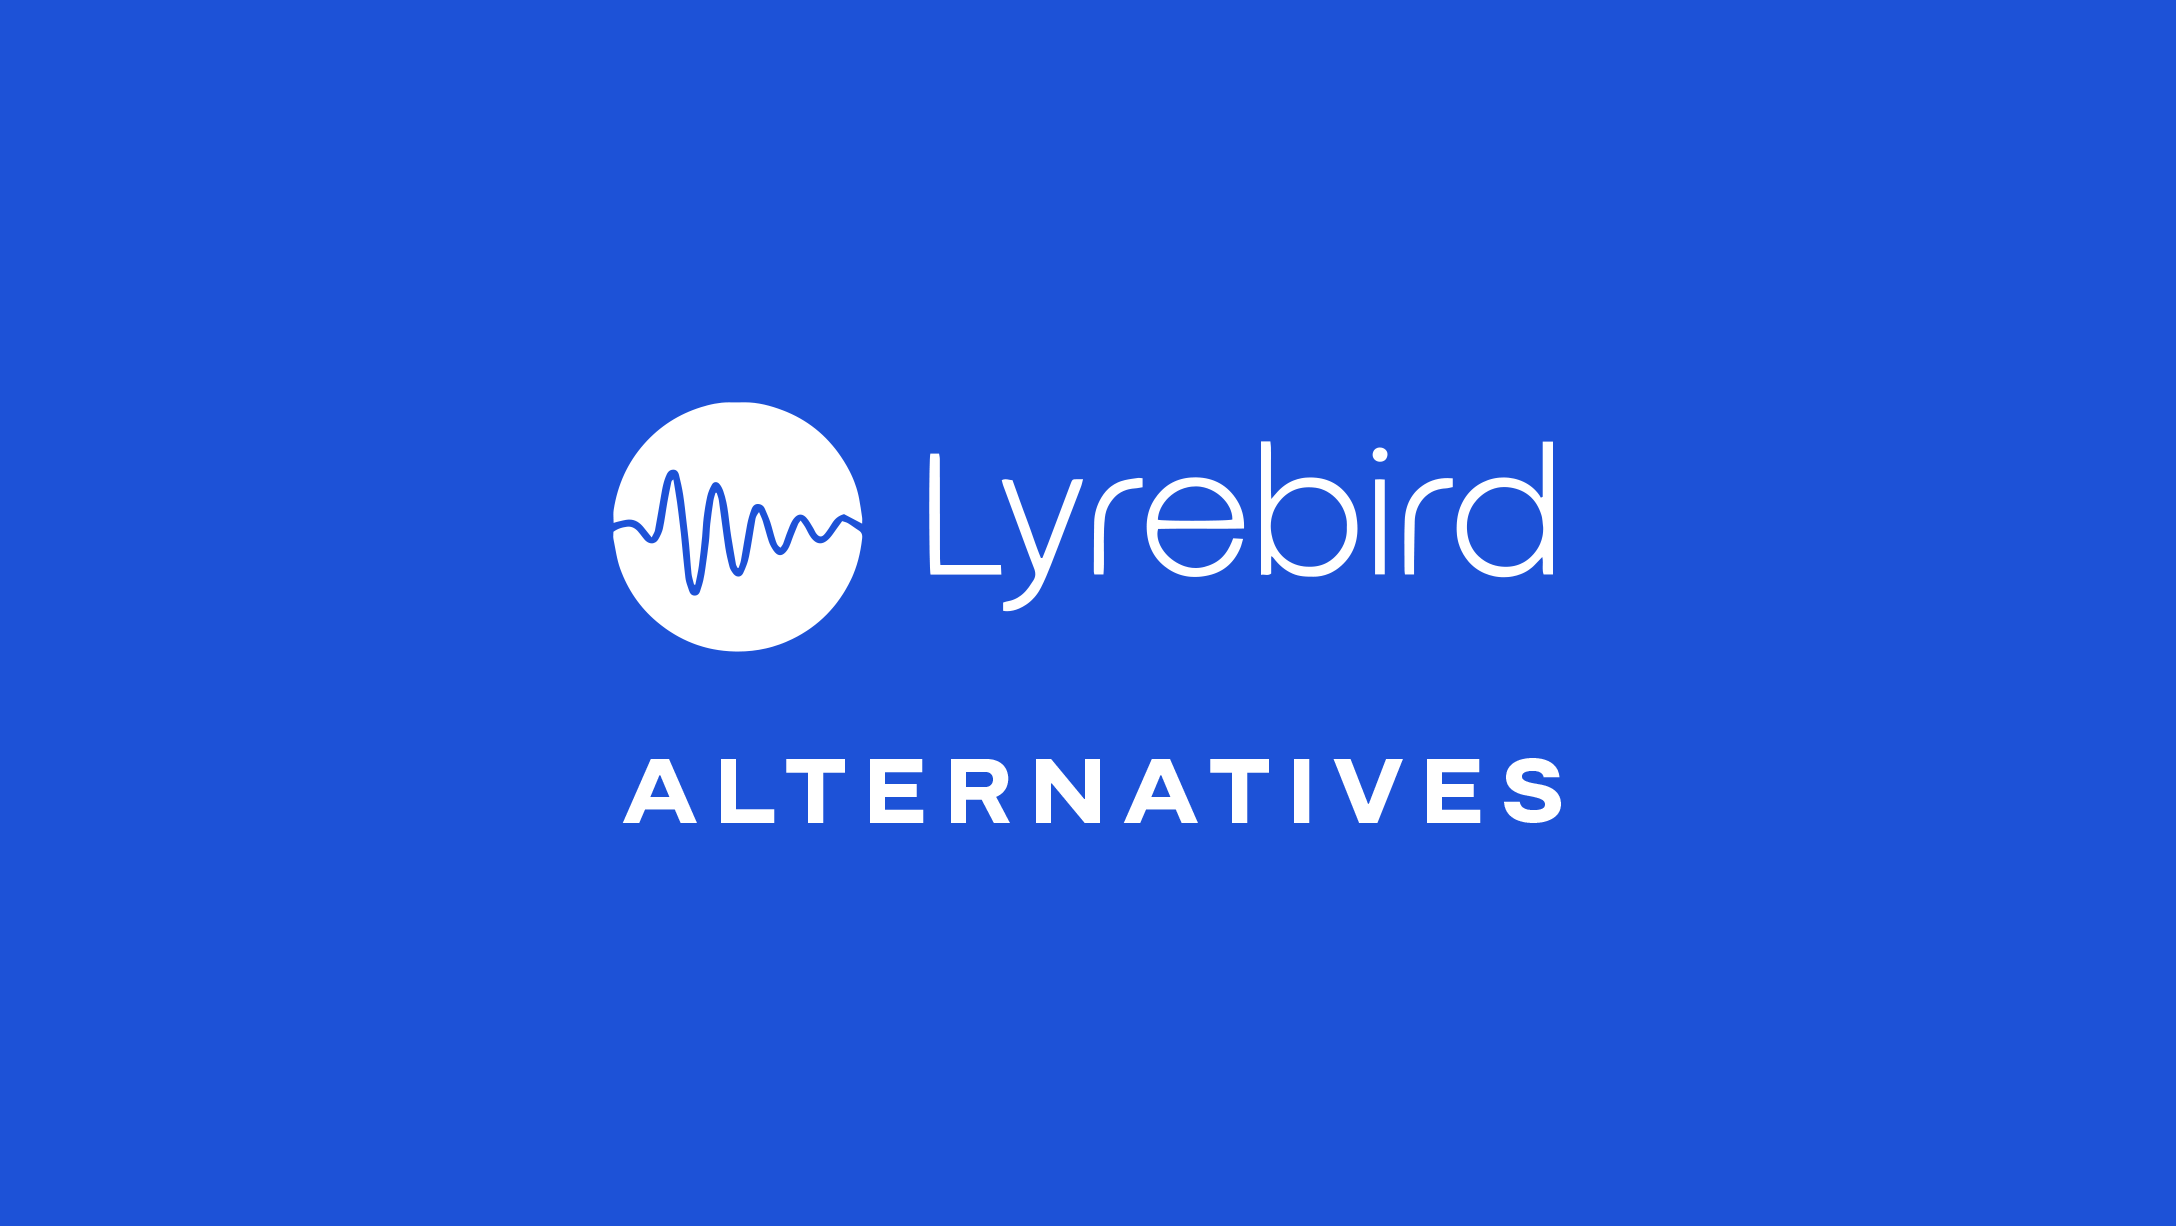 RIP Lyrebird AI—which alternatives should I try?